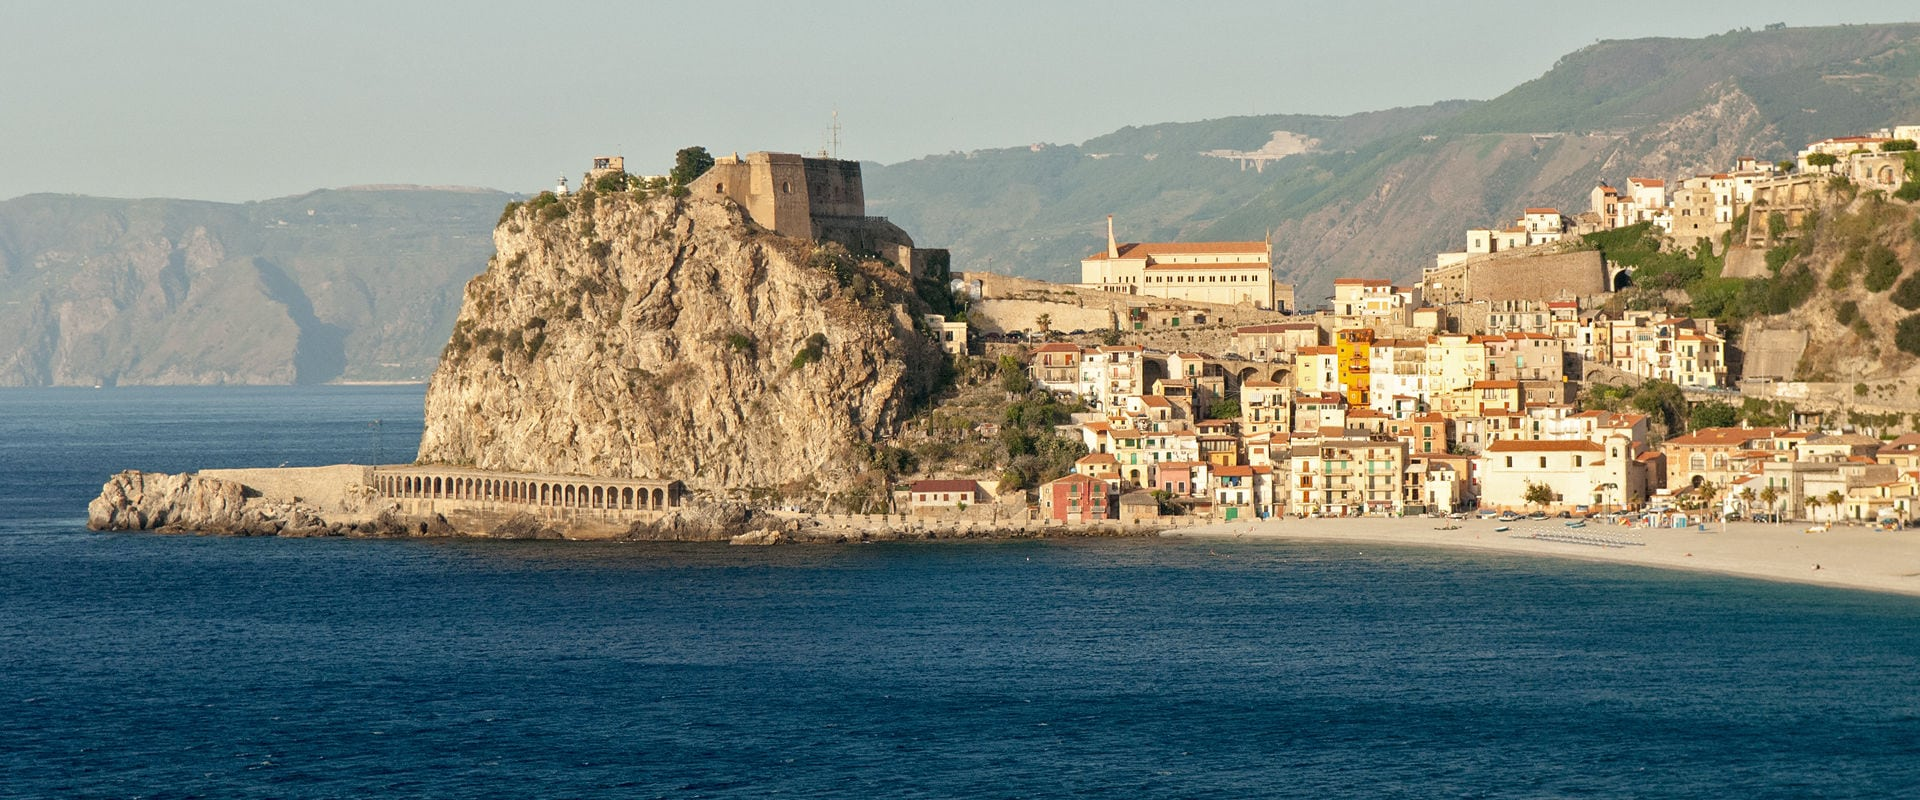 The Grantourismo Travel Guide to Calabria, Italy. Copyright © 2017 Terence Carter / Grantourismo. All Rights Reserved.